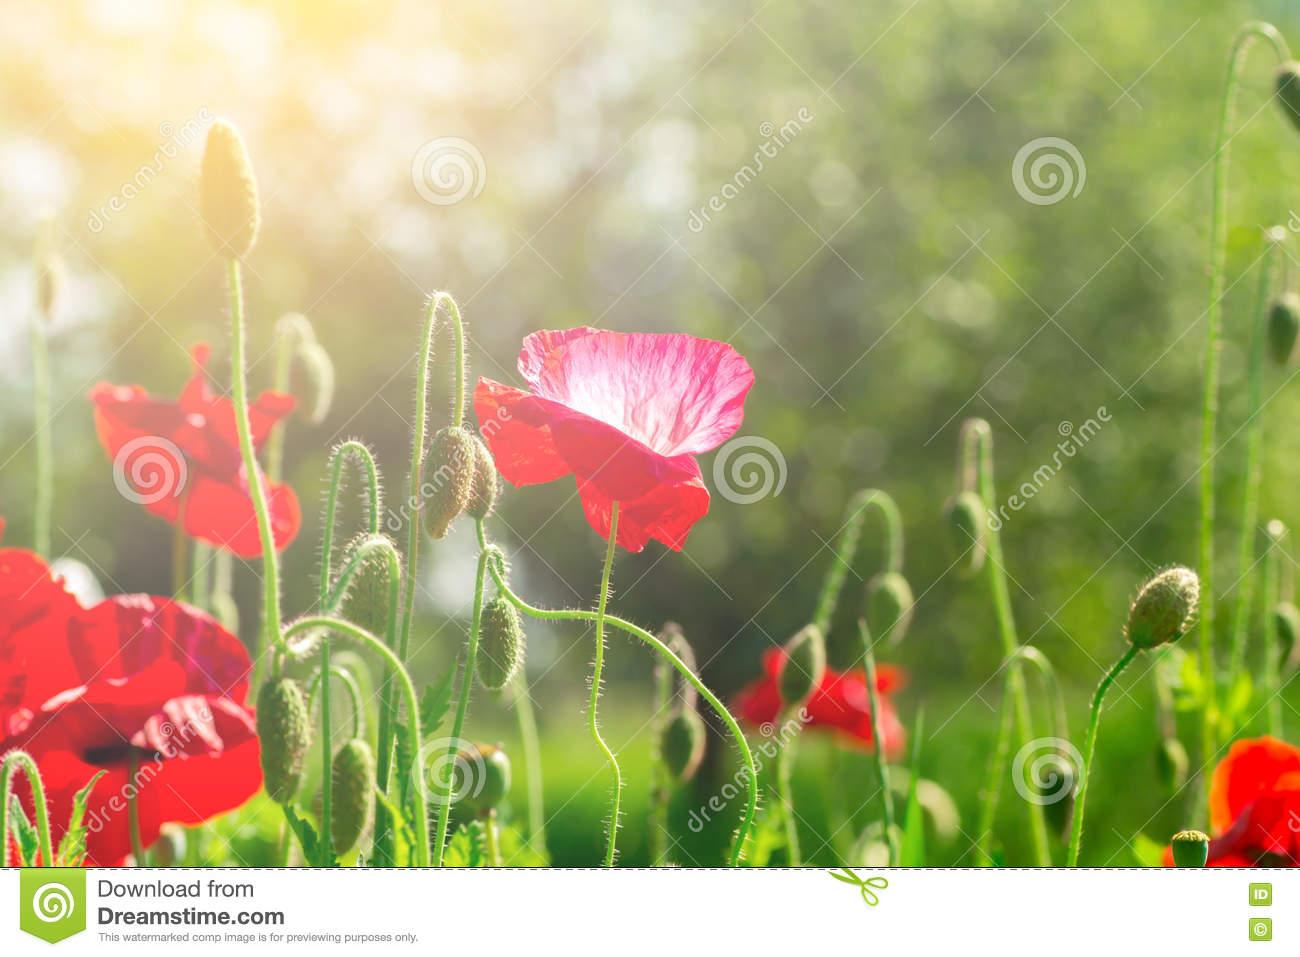 Flowering poppies a field of poppies sunlight shines on plants flowering poppies a field of poppies sunlight shines on plants red spring flowers gentle warm soft colors blurred background mightylinksfo